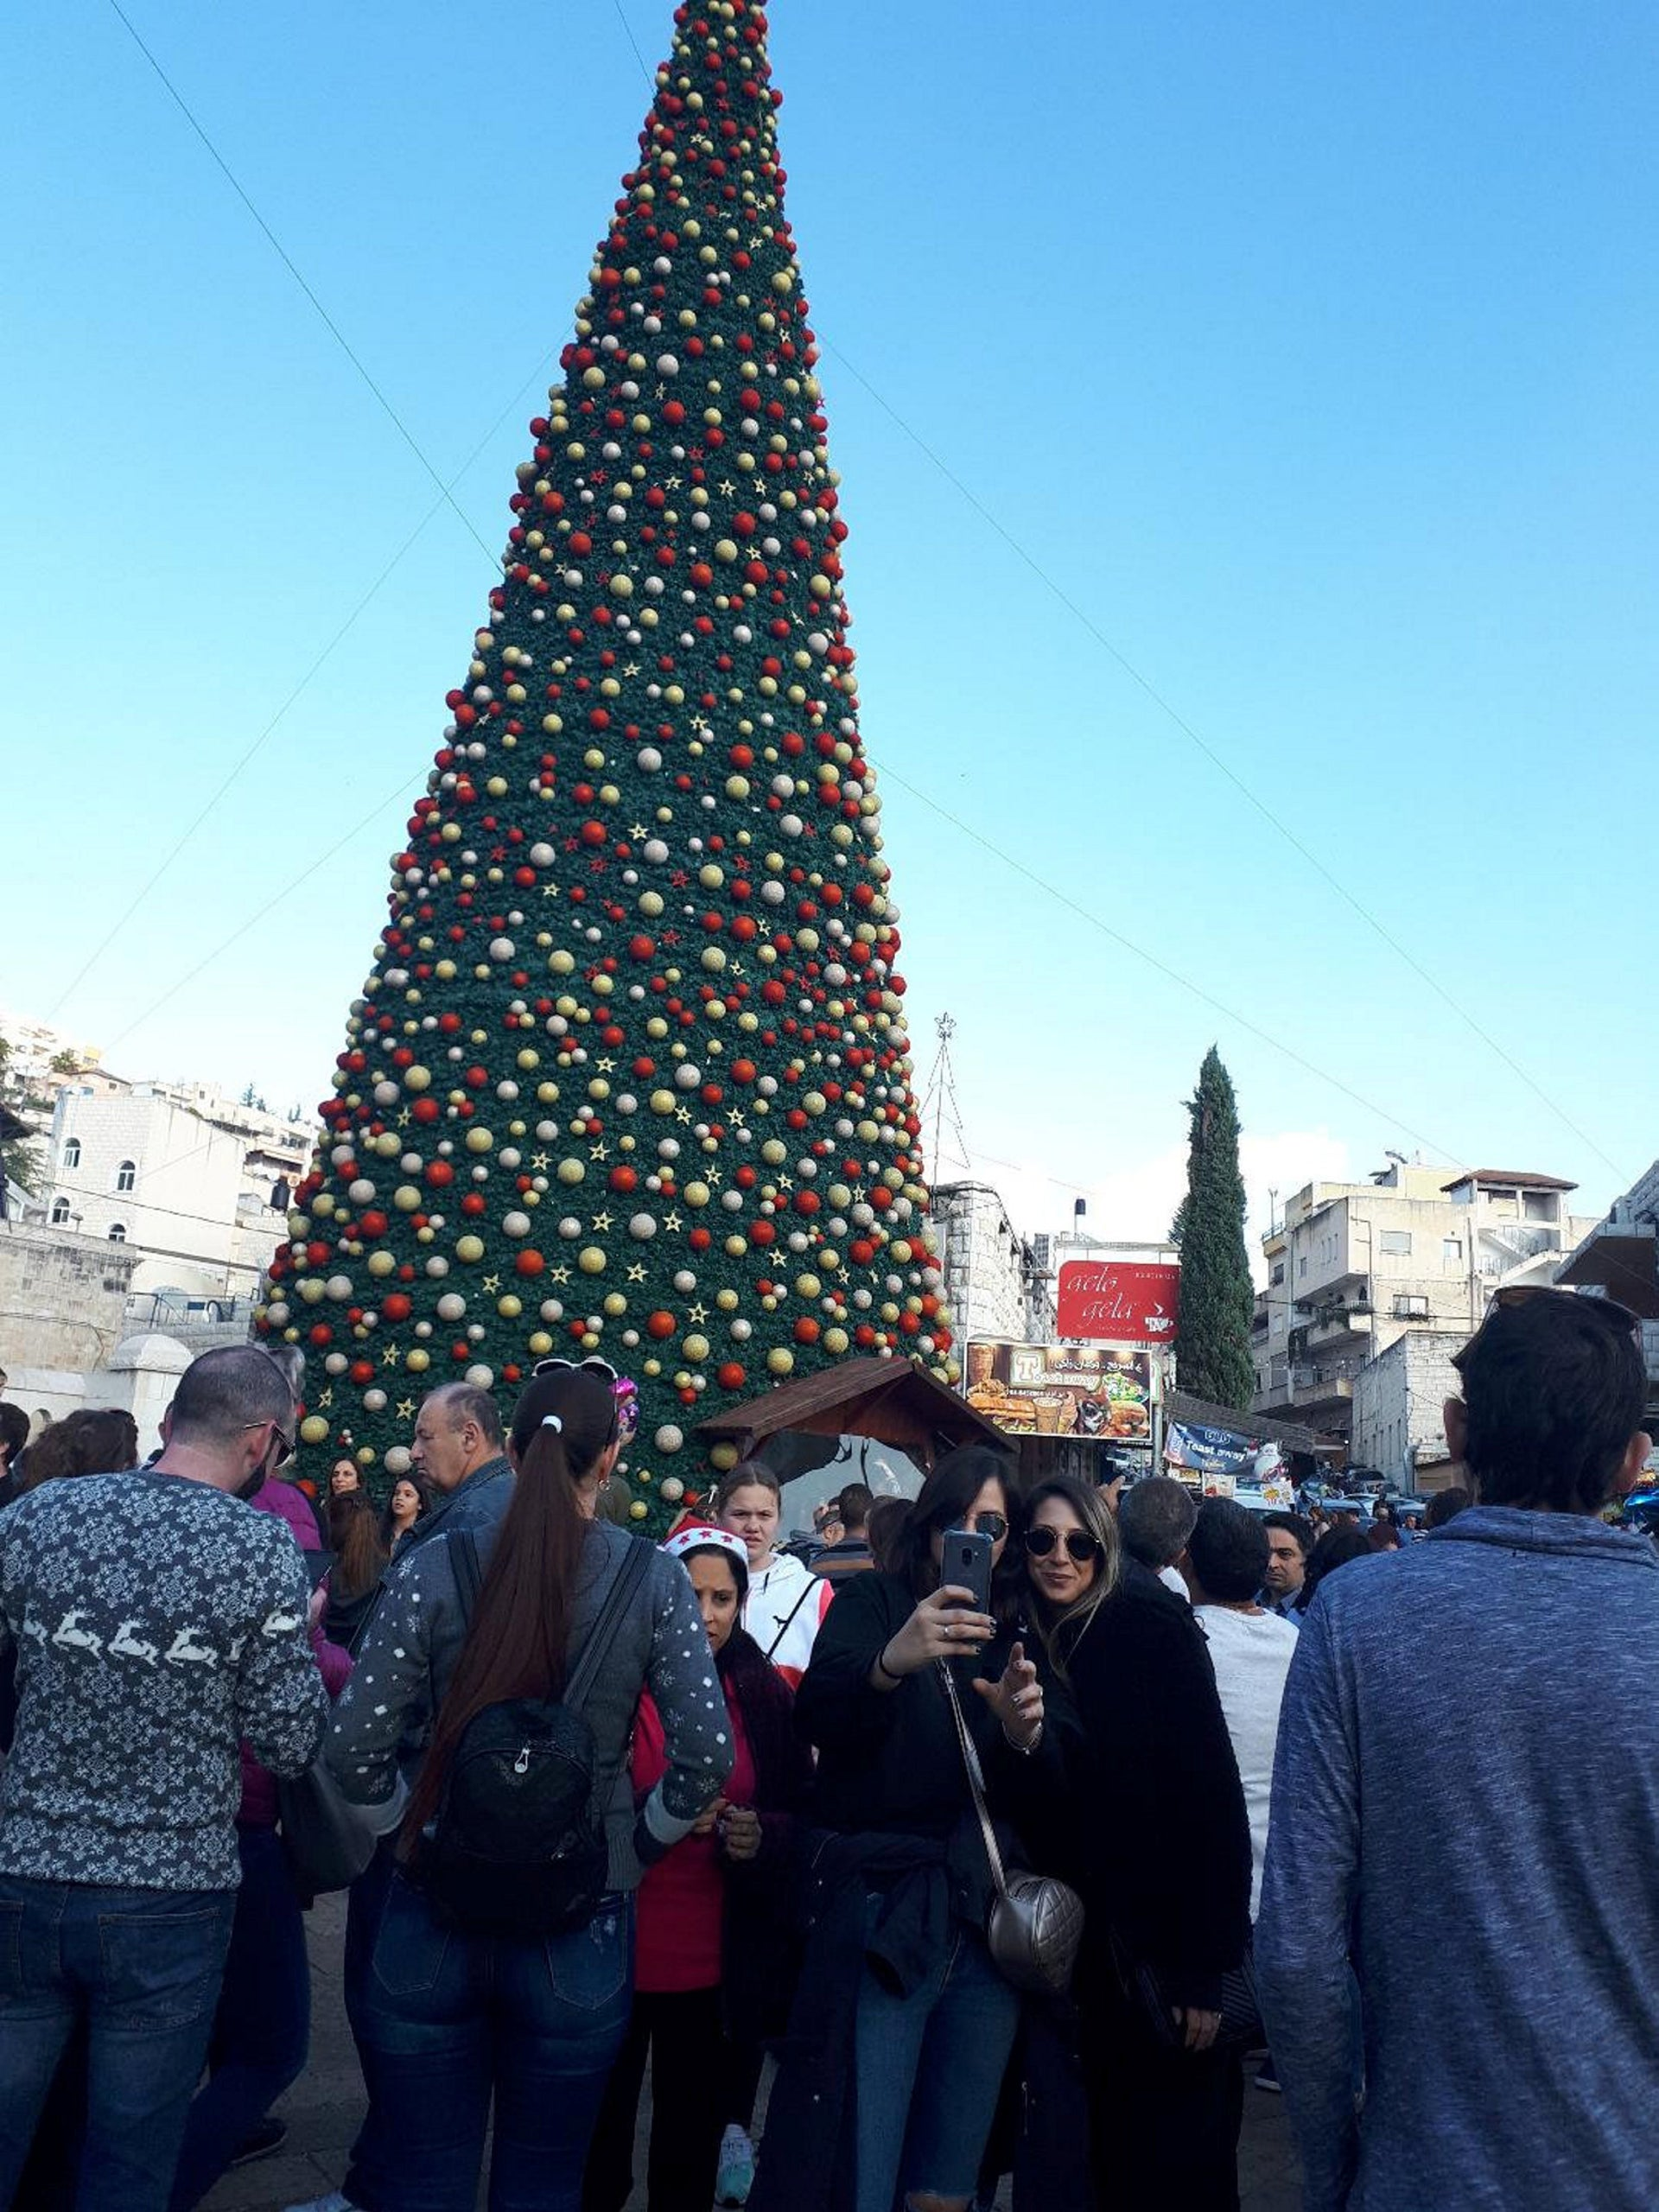 Taking a selfie in front of the large Christmas tree outside the Greek Orthodox Church of the Annunciation, Nazareth, December 22, 2018.